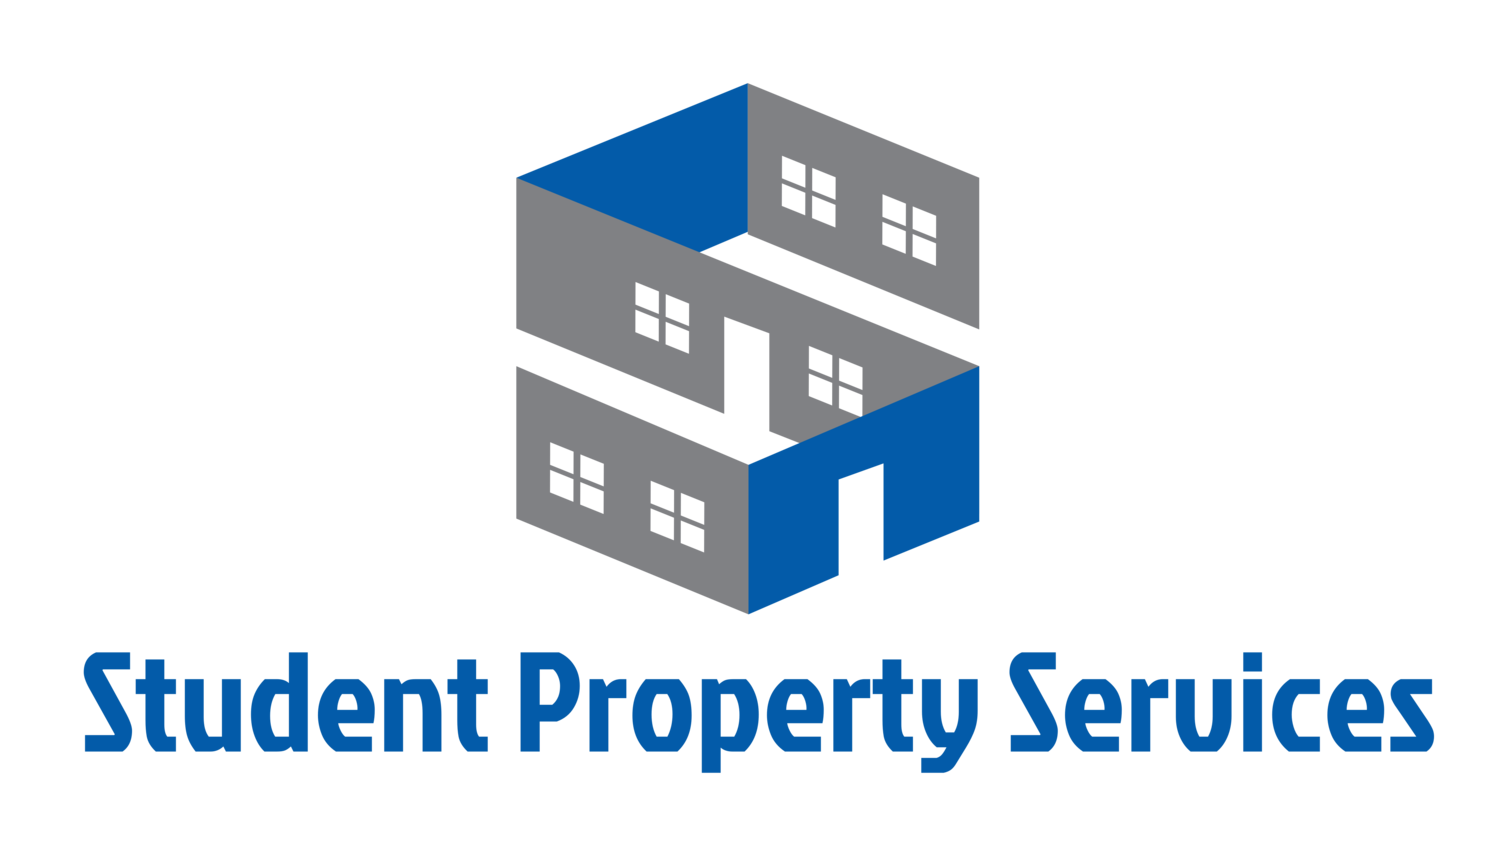 Student Property Services